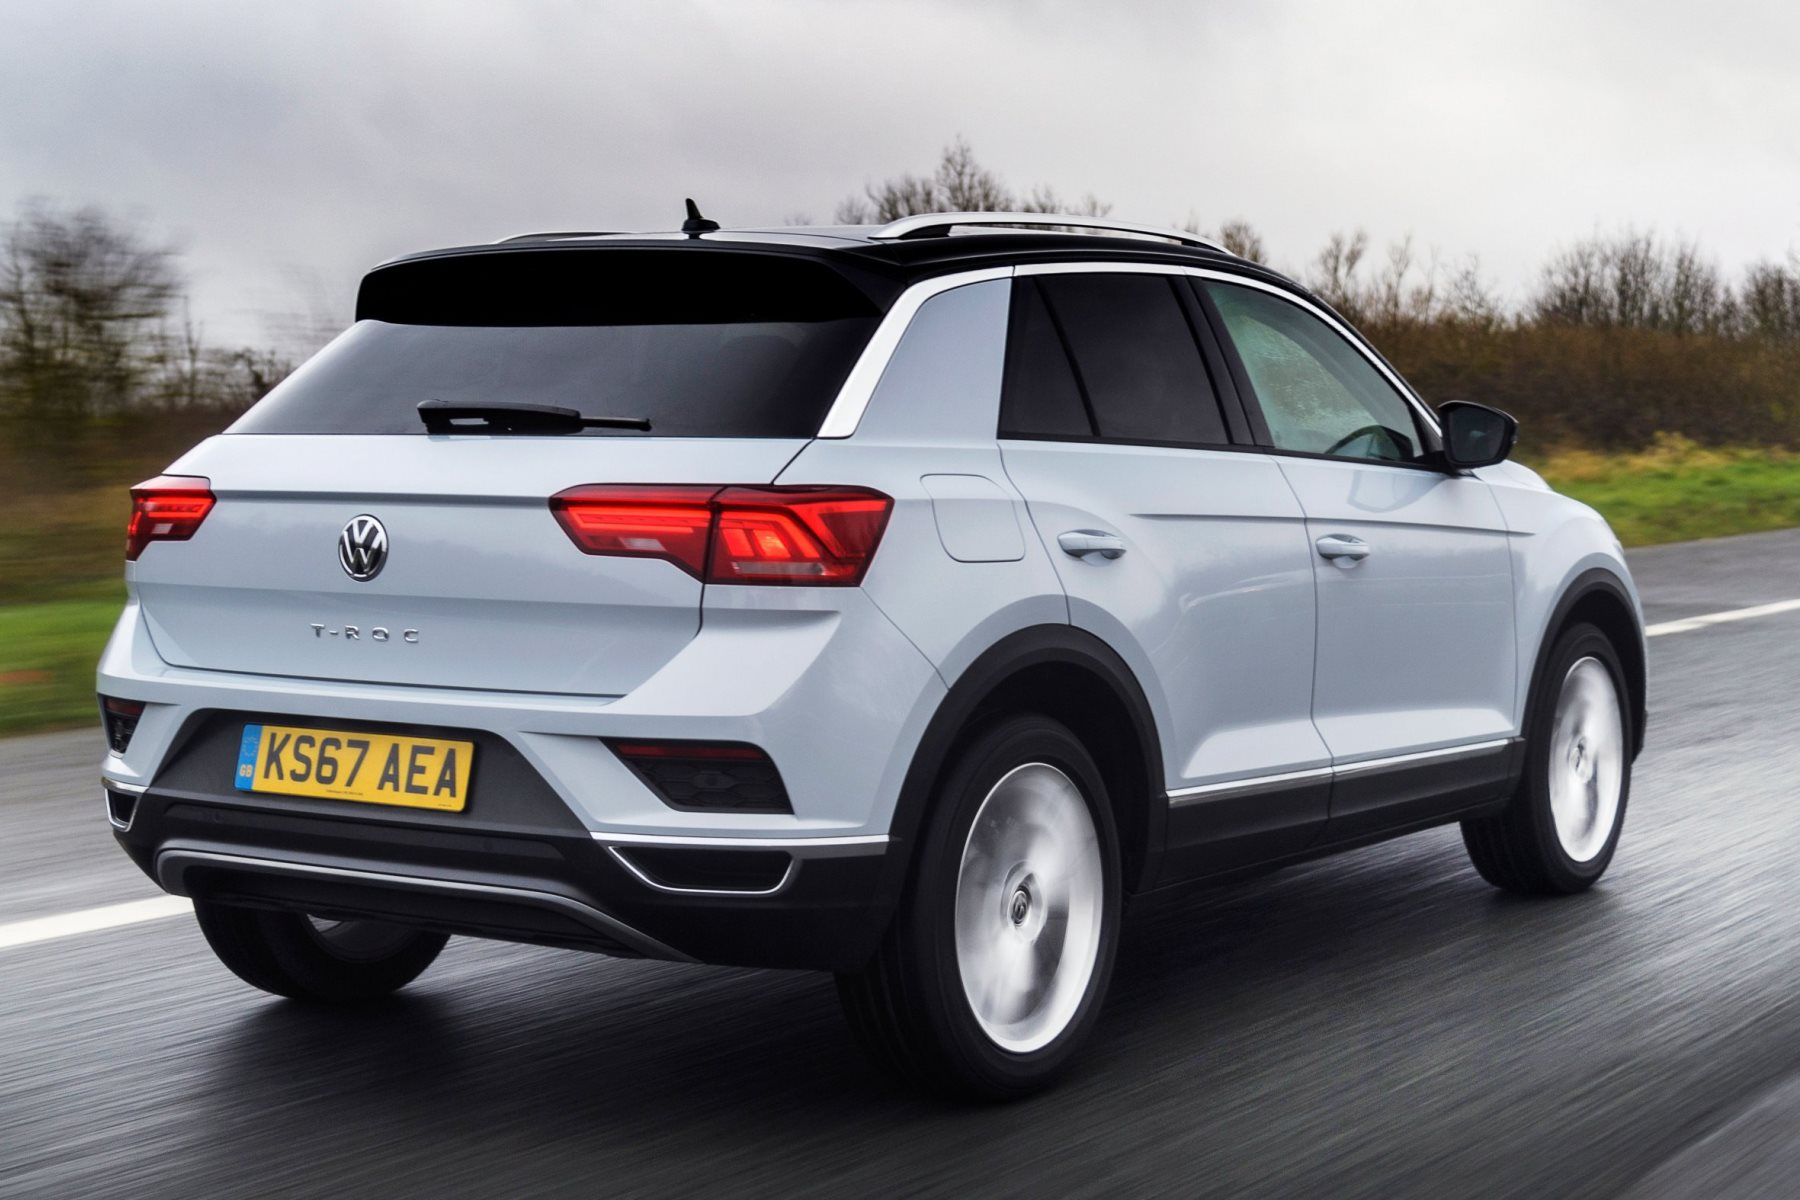 Volkswagen T Roc Review >> Volkswagen T-Roc review – Automotive Blog